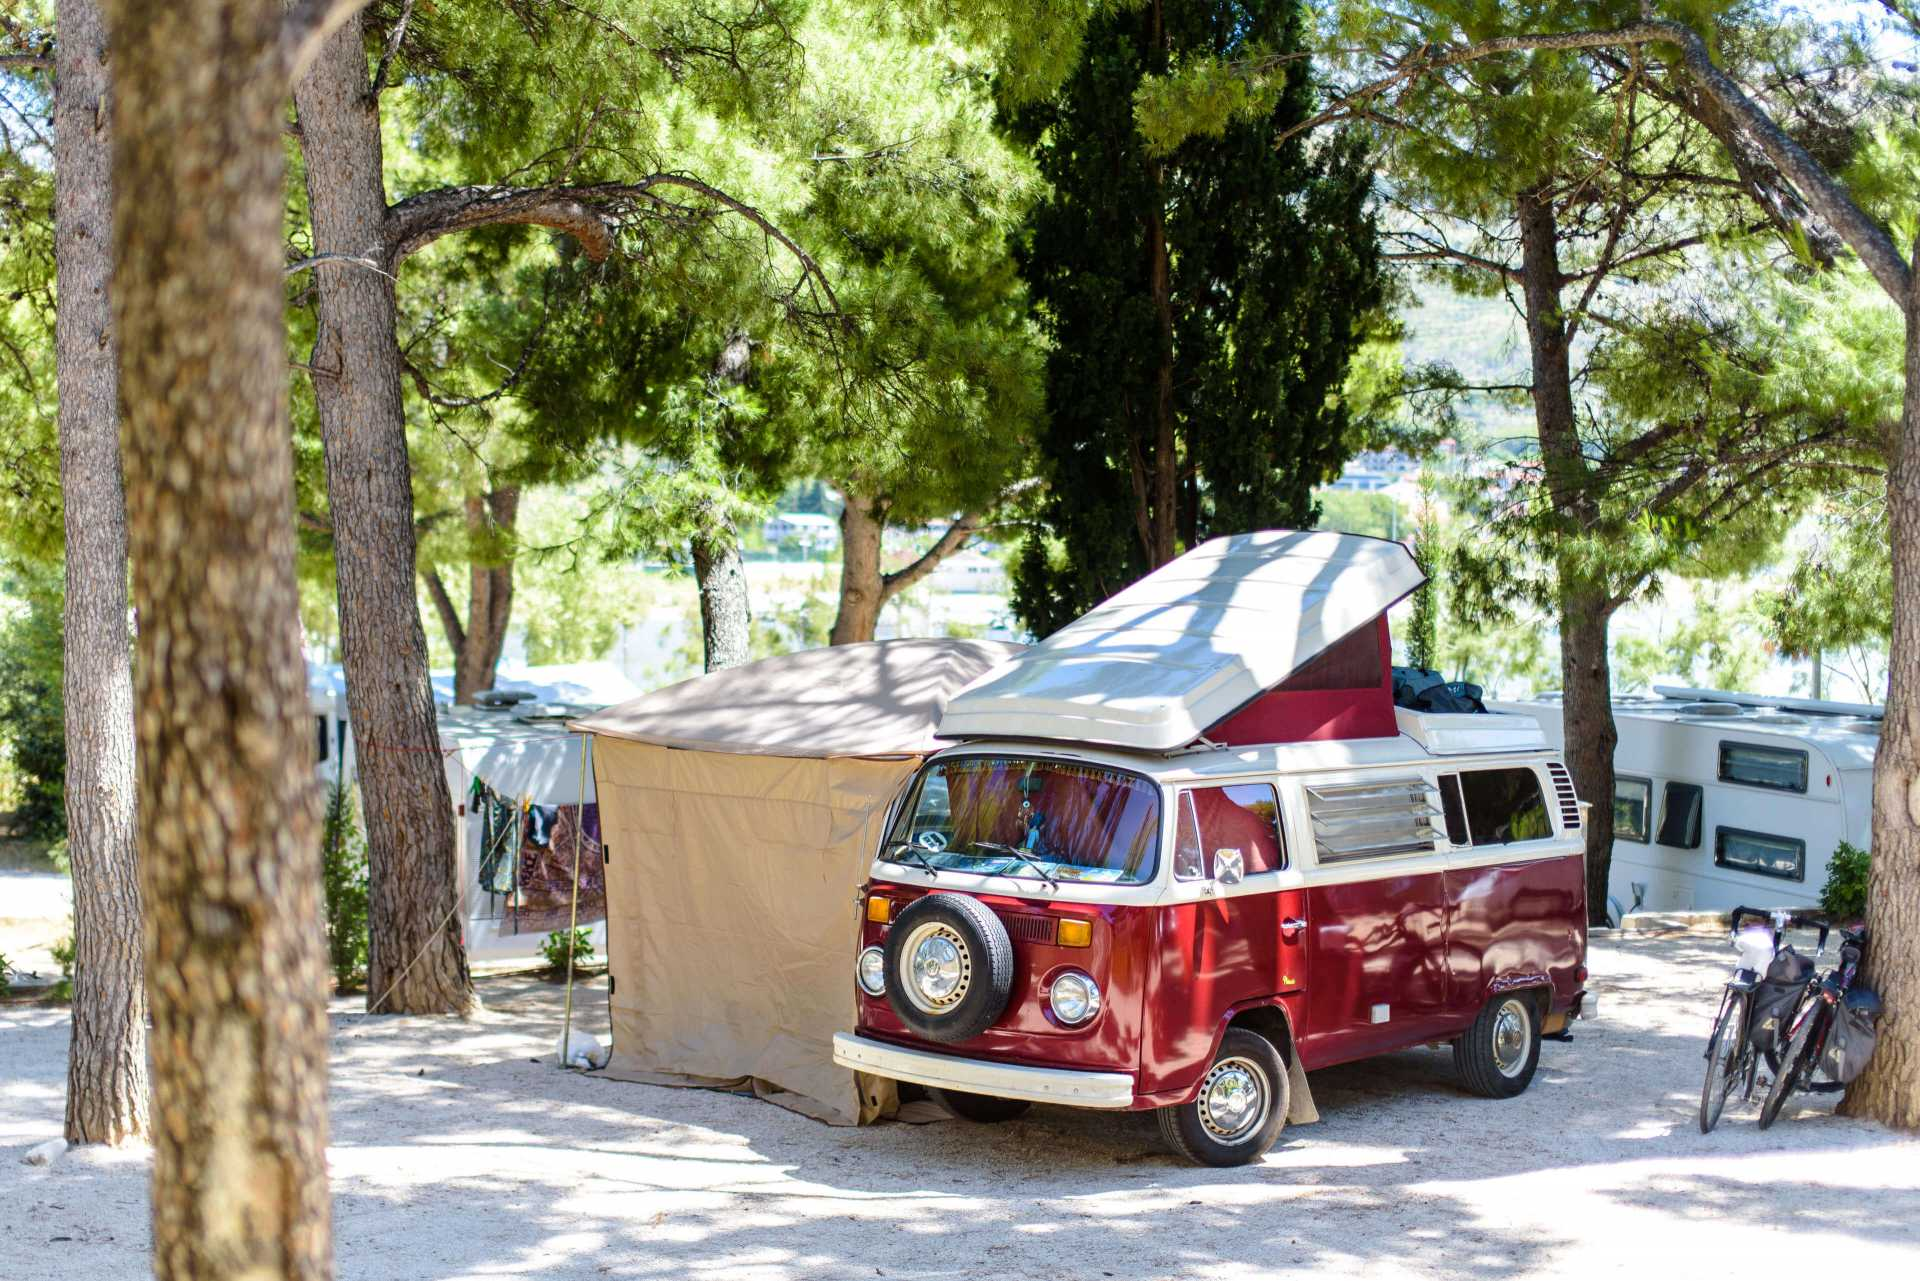 Camping pitches in Camping Split